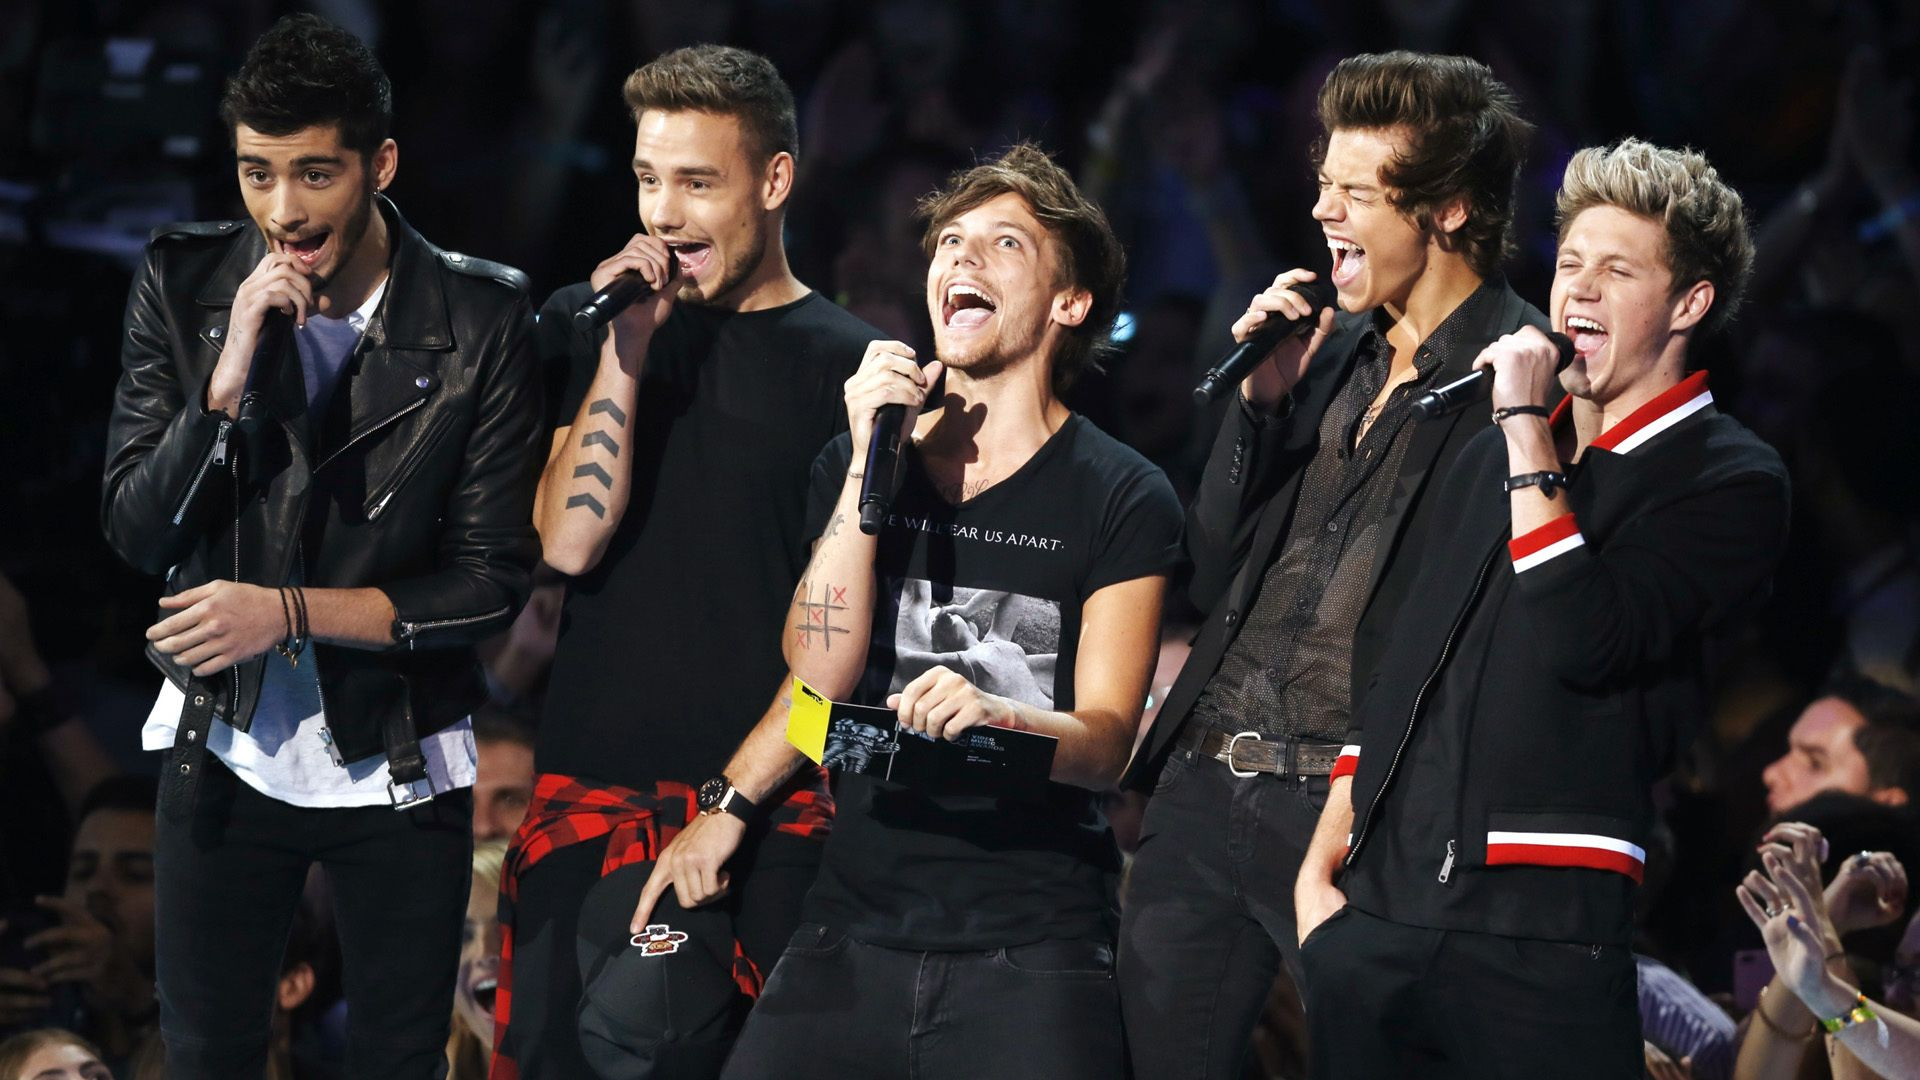 Pin by Juli Singh on one direction in 2019 One direction